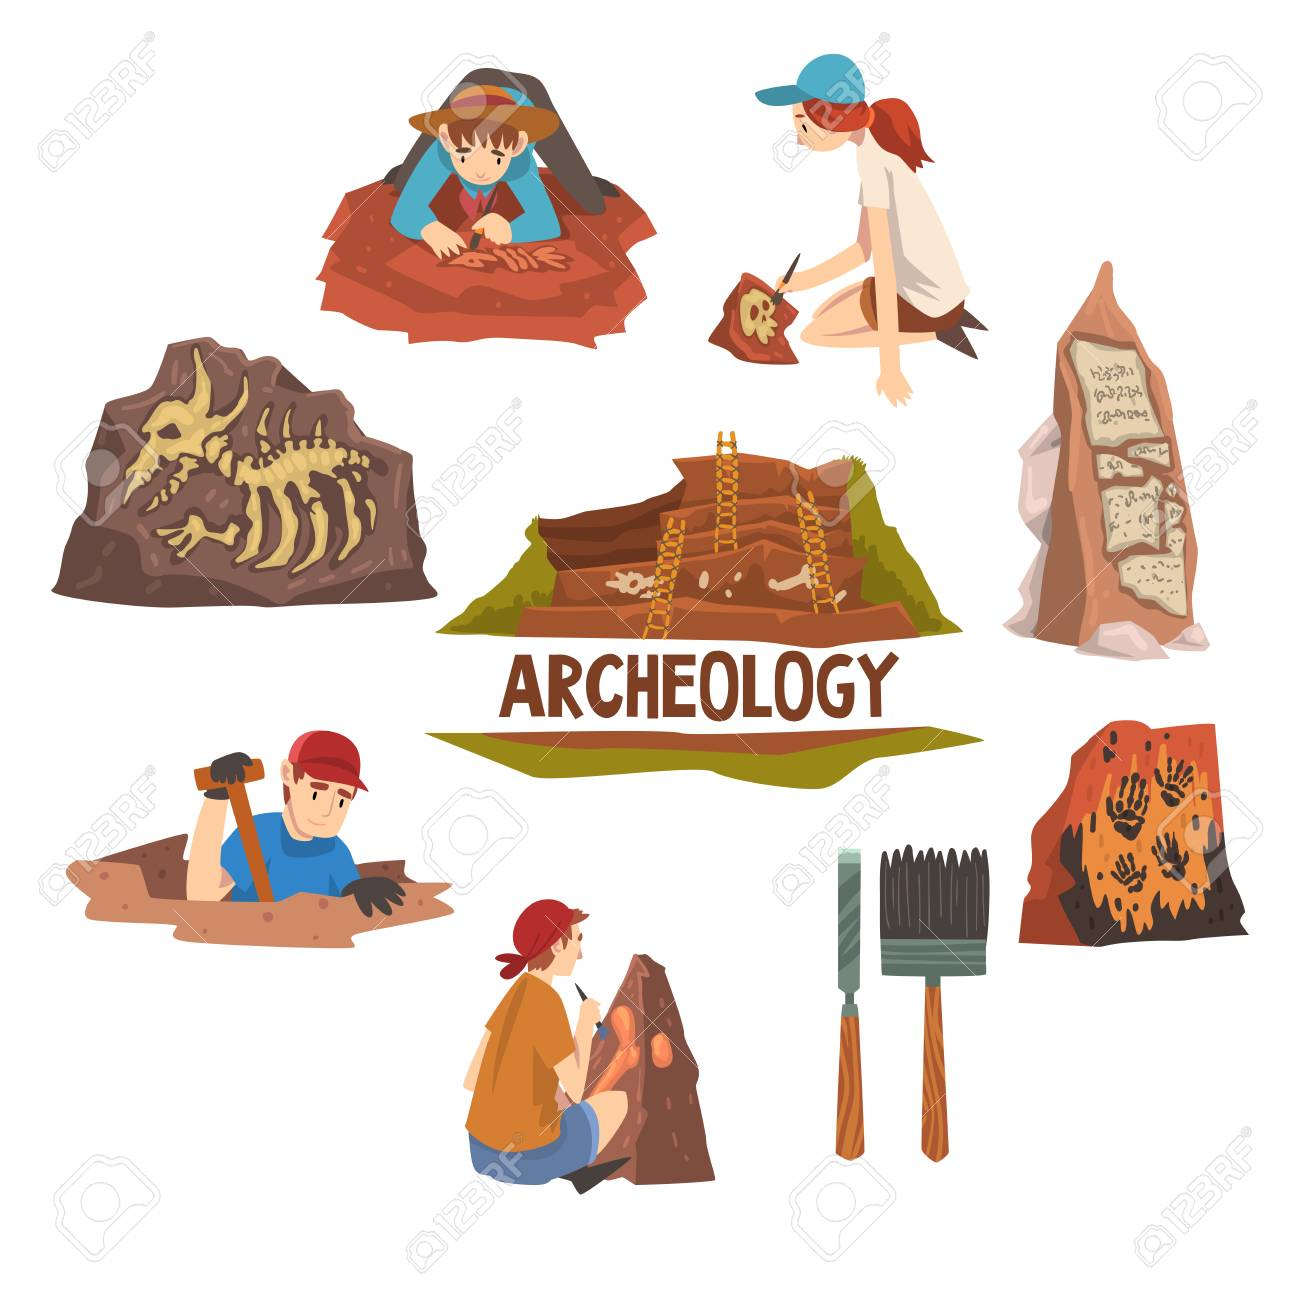 Archeology and Paleontology Set, Scientist Working on Excavations,